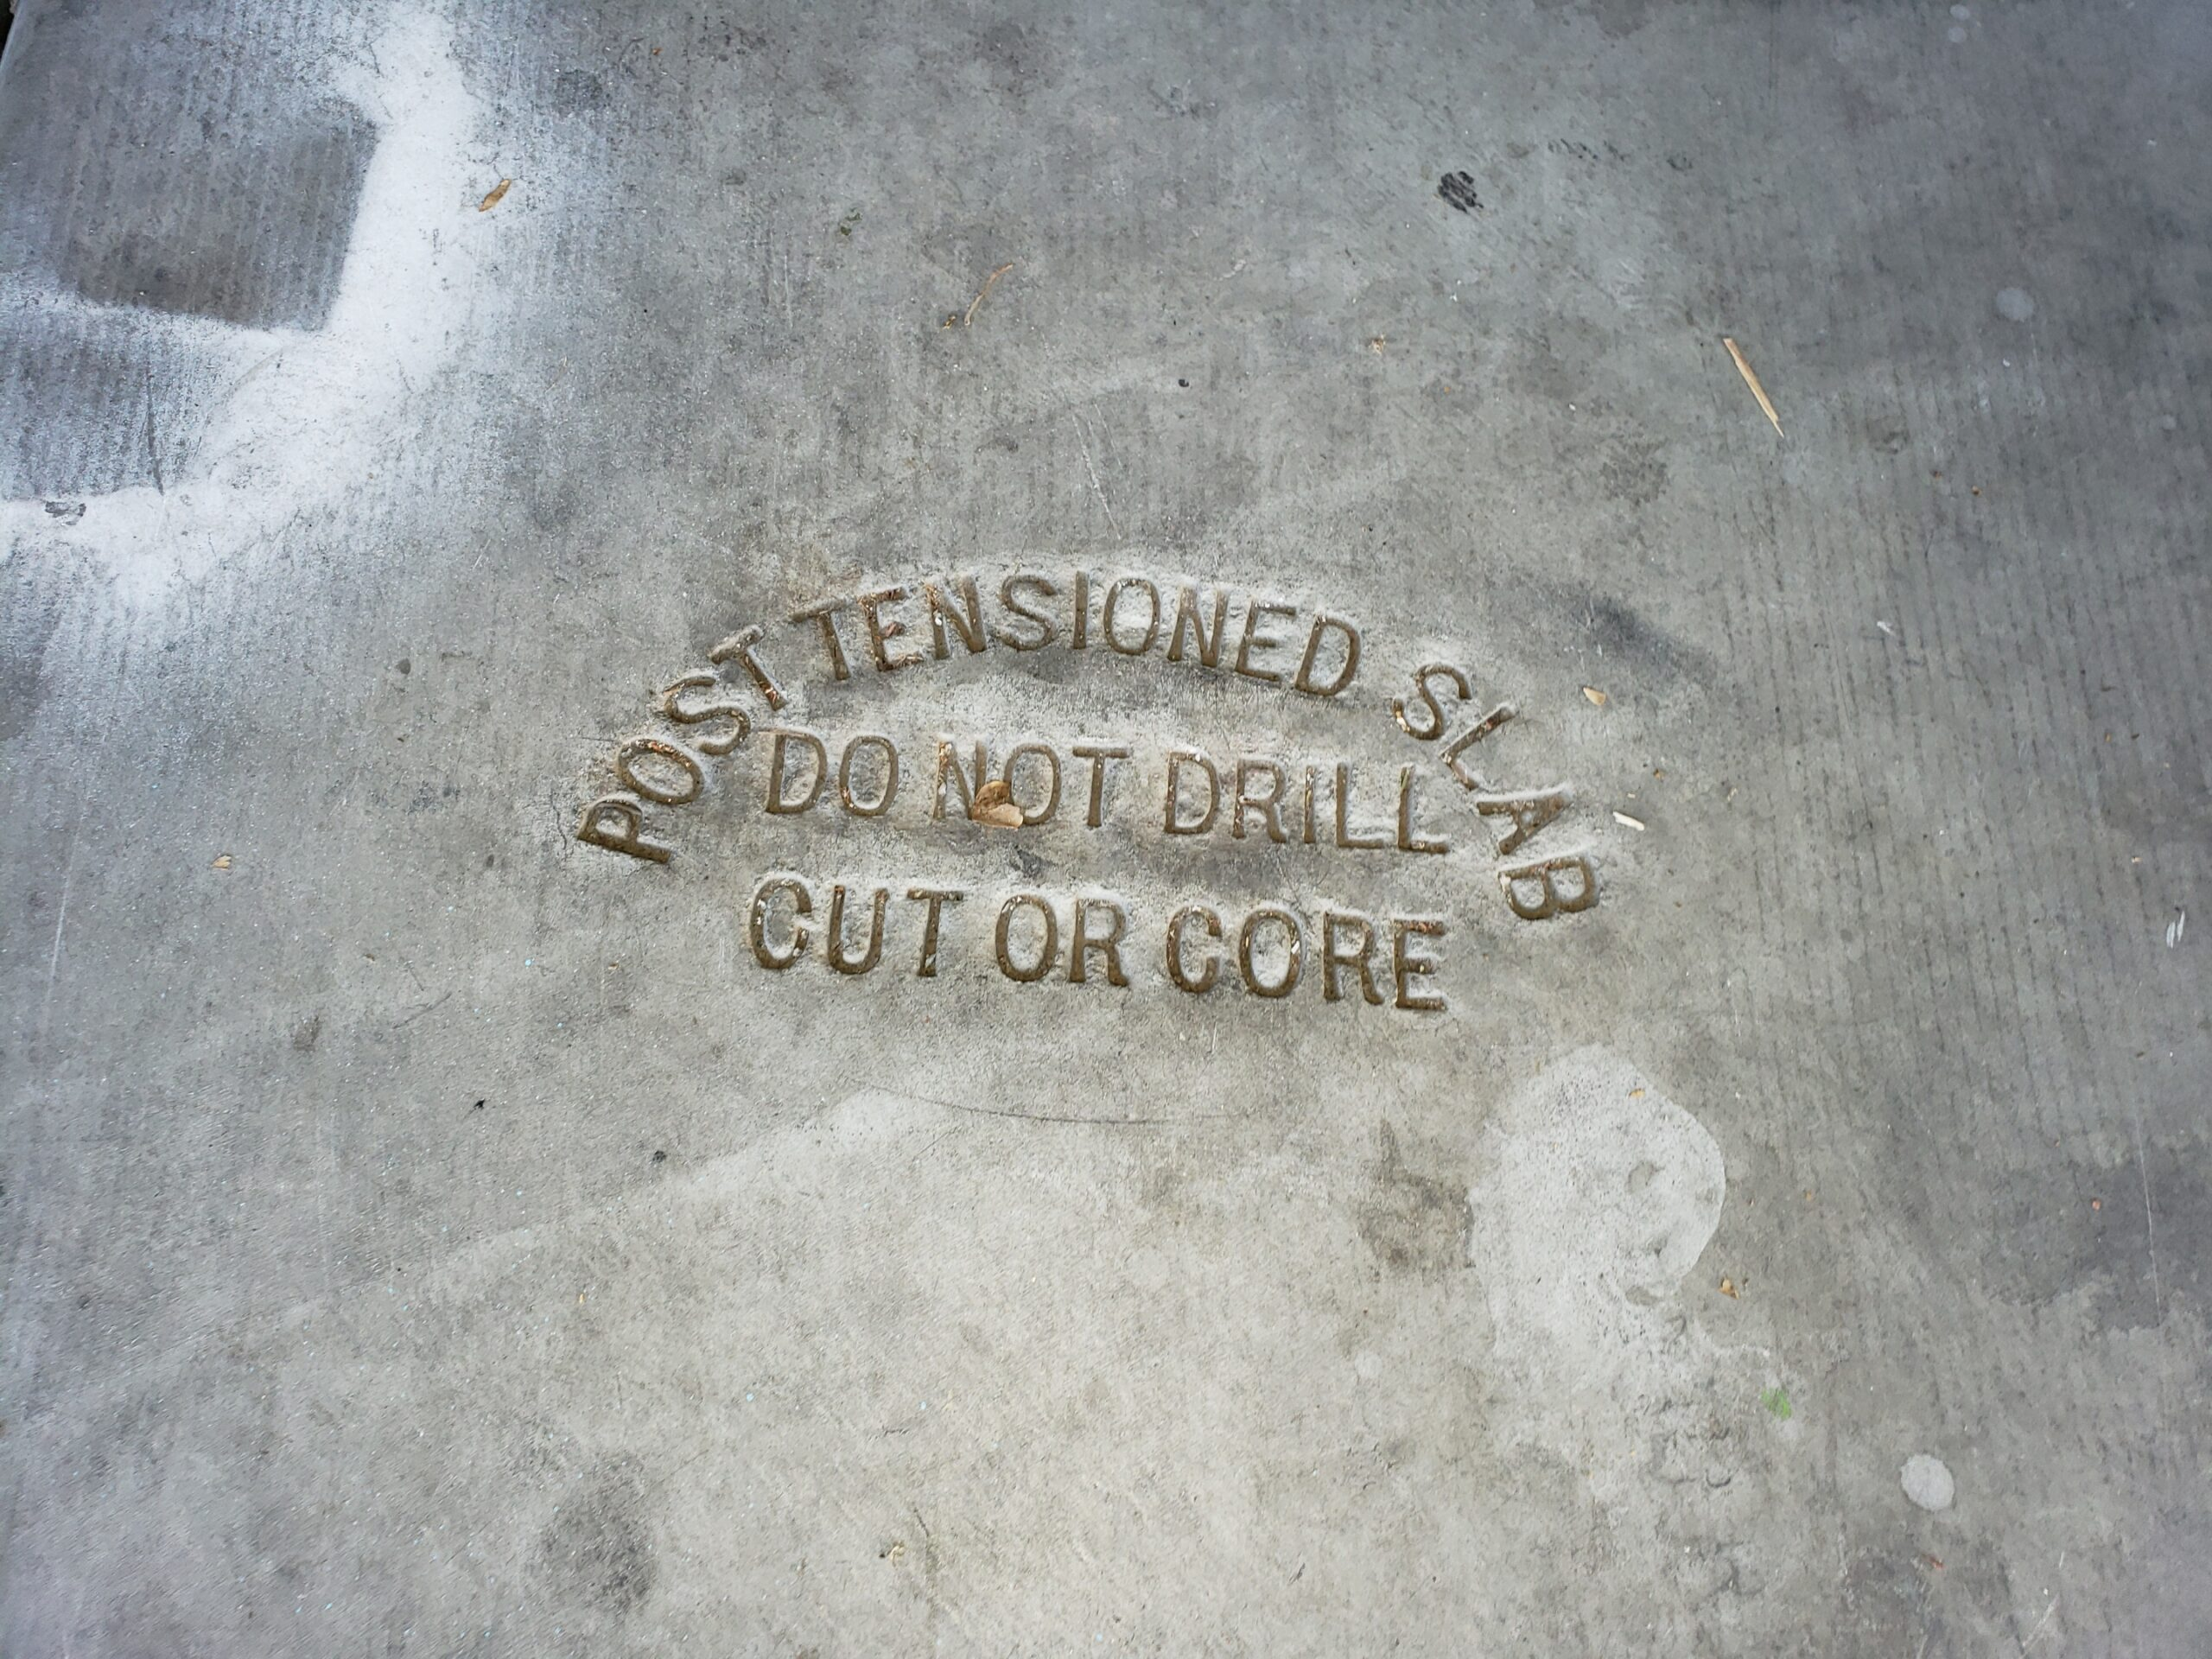 Post tension slabs aid in areas where expansive soils are present